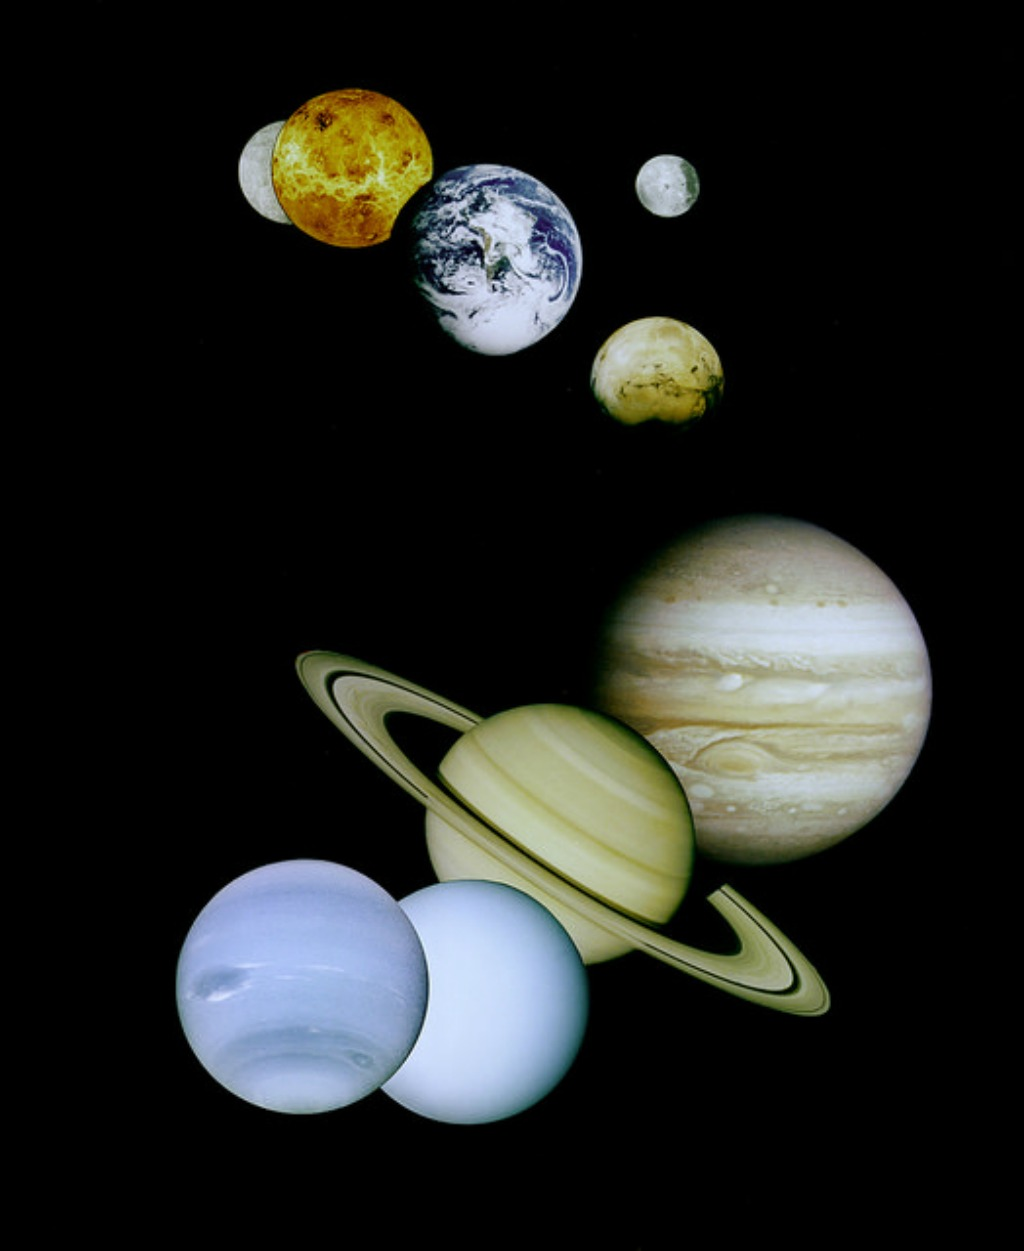 Solar System Montage - This is a montage of planetary images taken by spacecraft managed by the Jet Propulsion Laboratory in Pasadena, California, United States - via NASA on The Commons